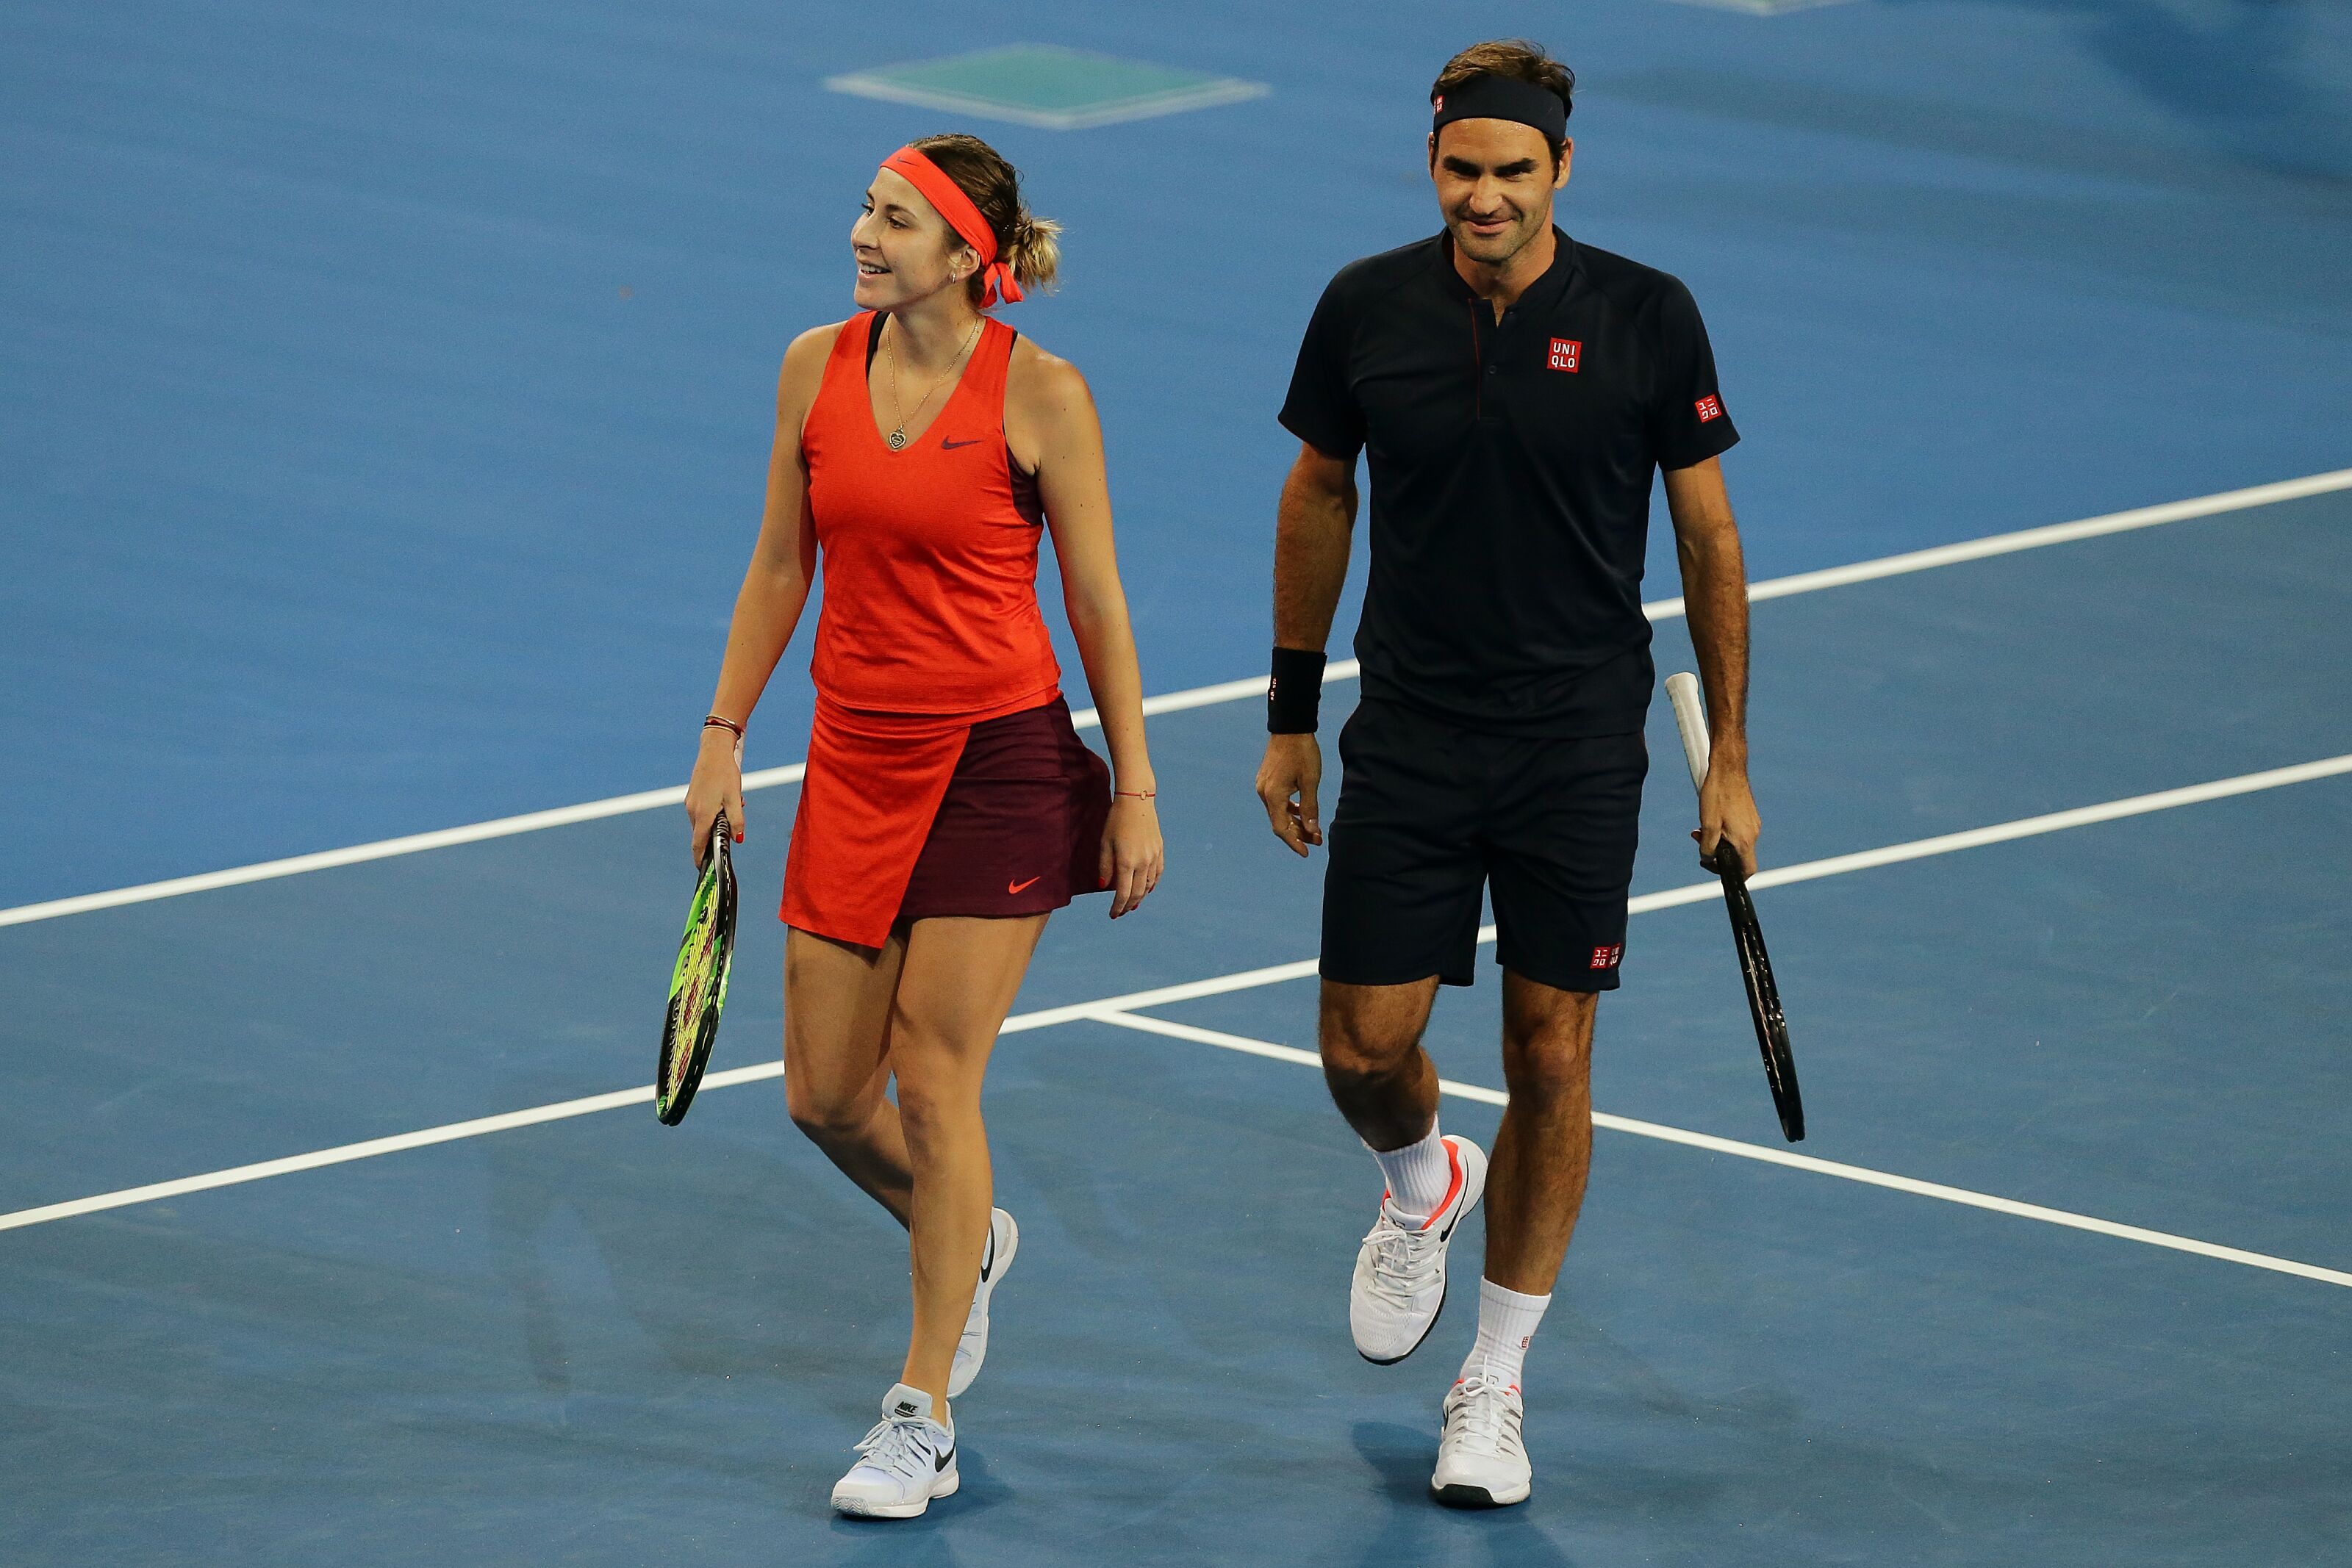 Roger Federer S Hopman Cup Performance Sign Of What To Expect